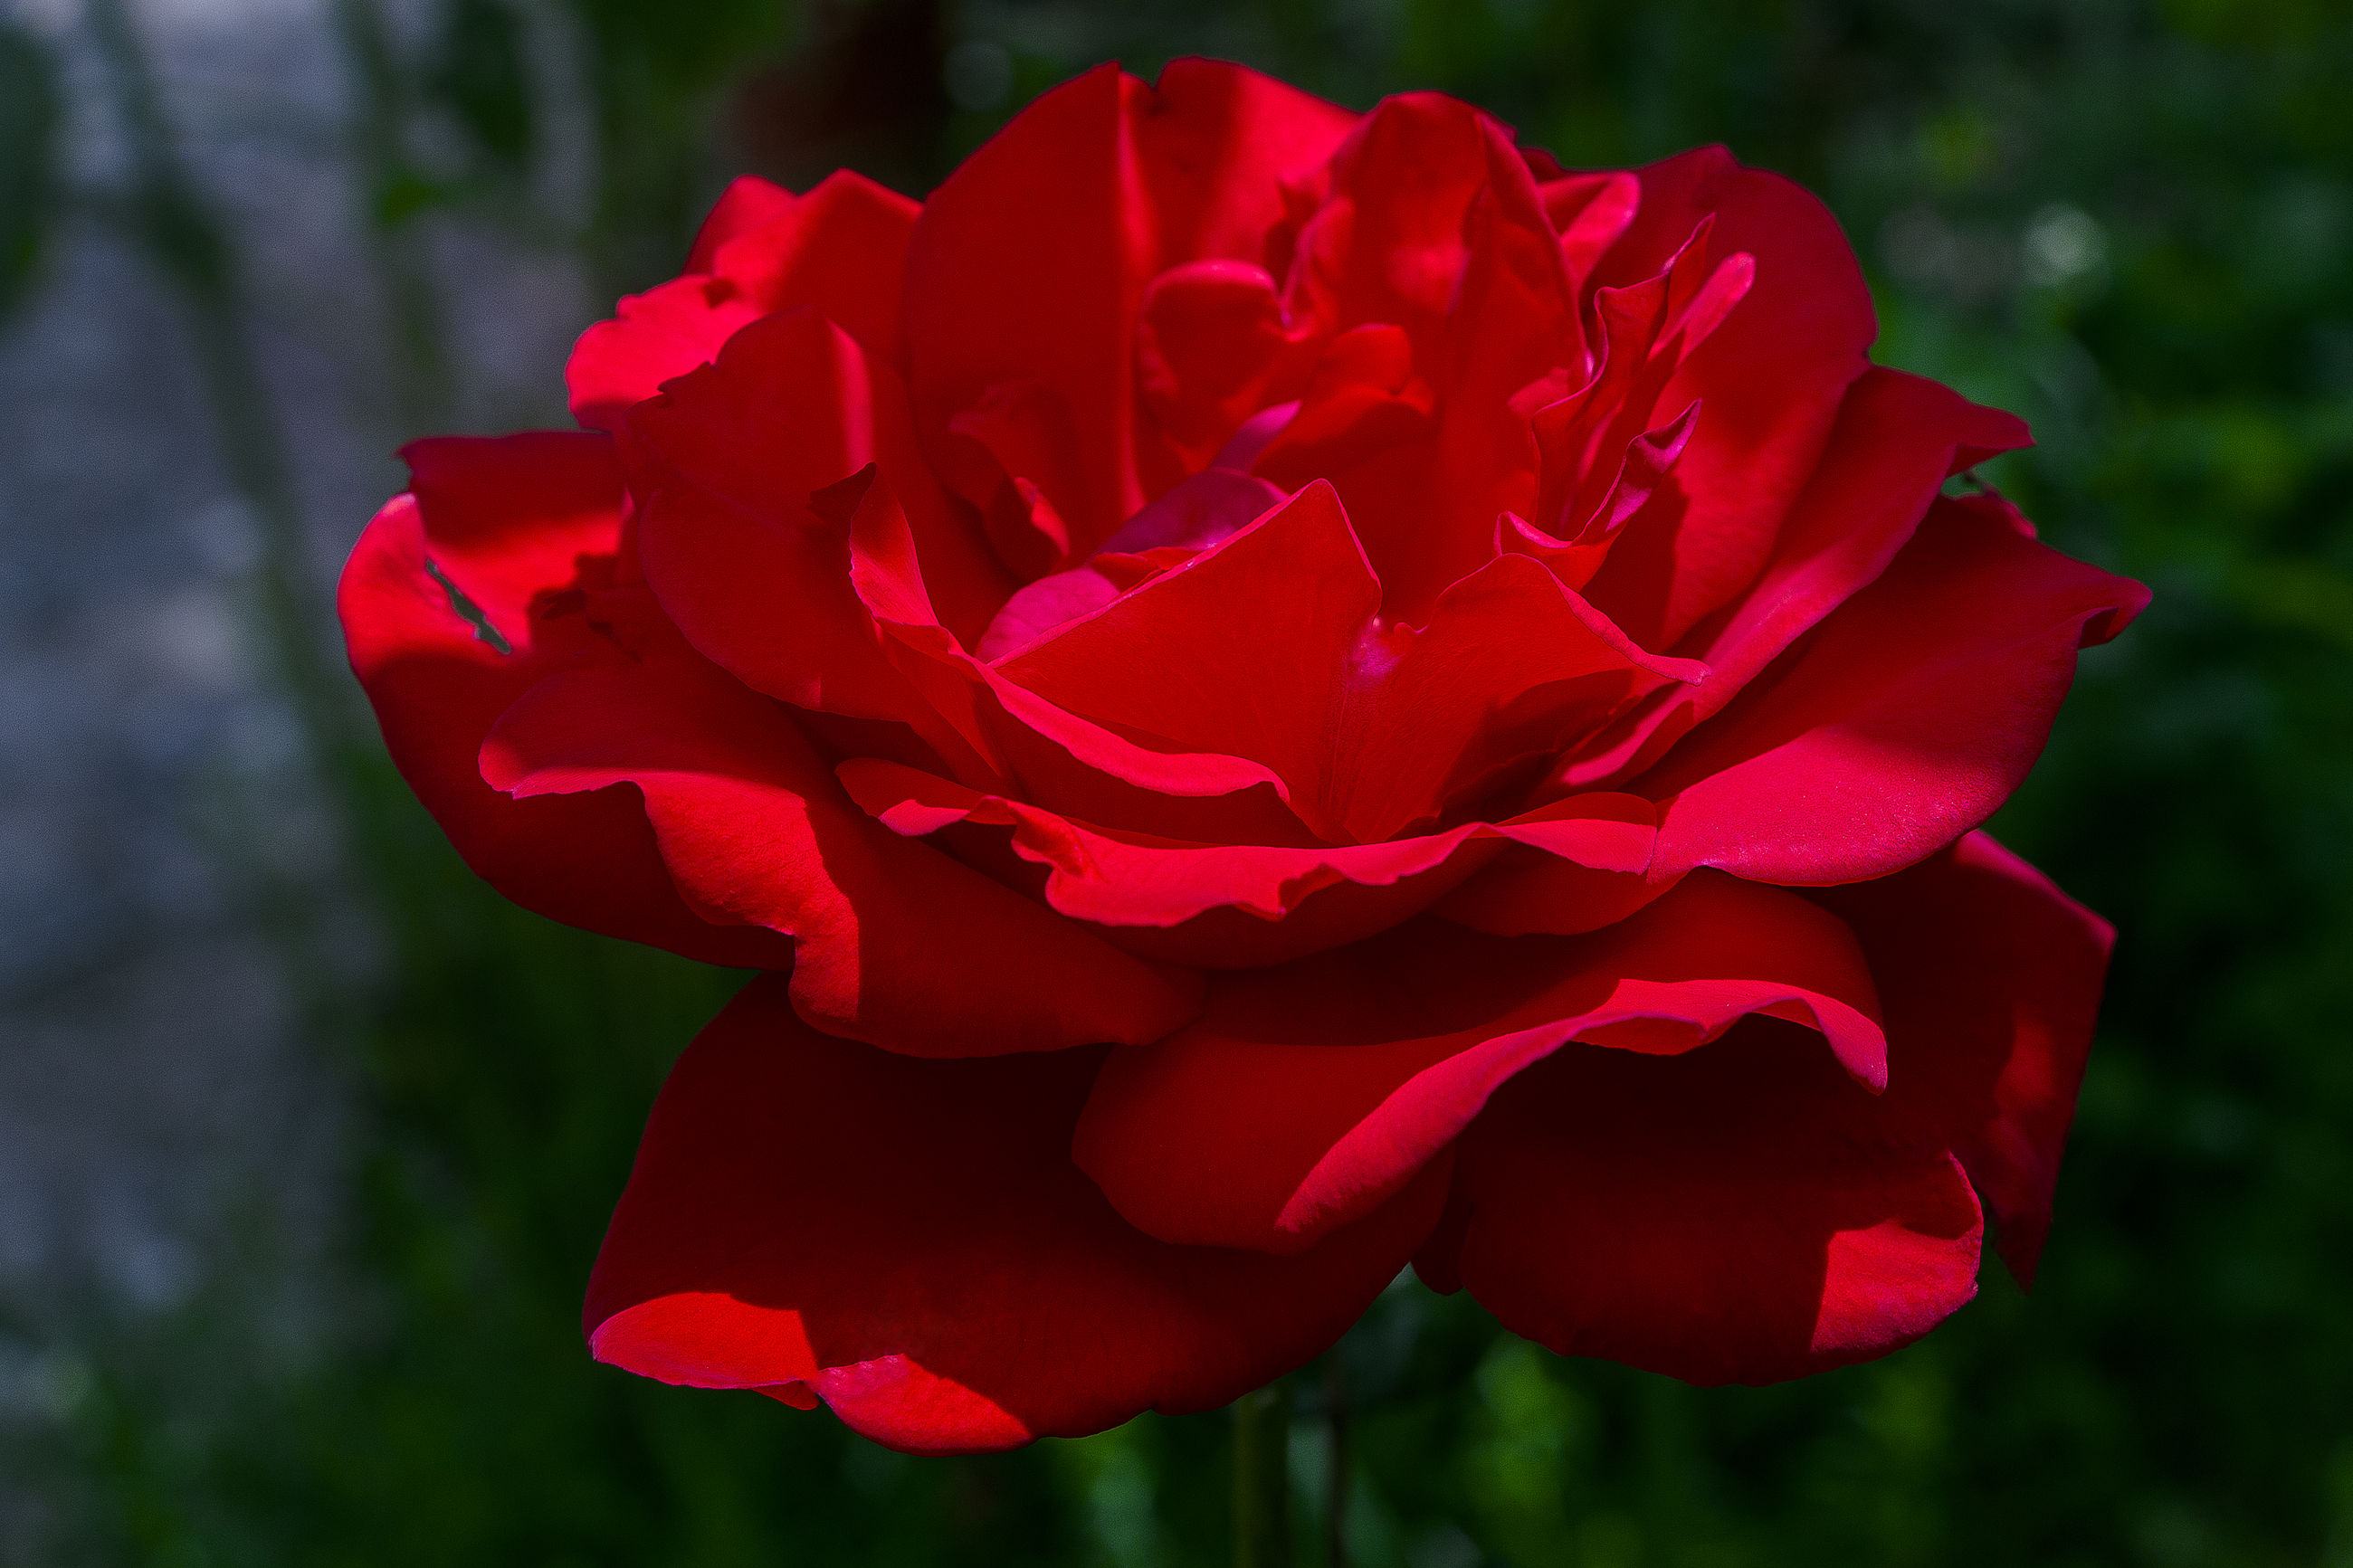 flower, petal, flower head, freshness, fragility, rose - flower, close-up, red, beauty in nature, focus on foreground, single flower, growth, blooming, nature, rose, in bloom, plant, pink color, single rose, selective focus